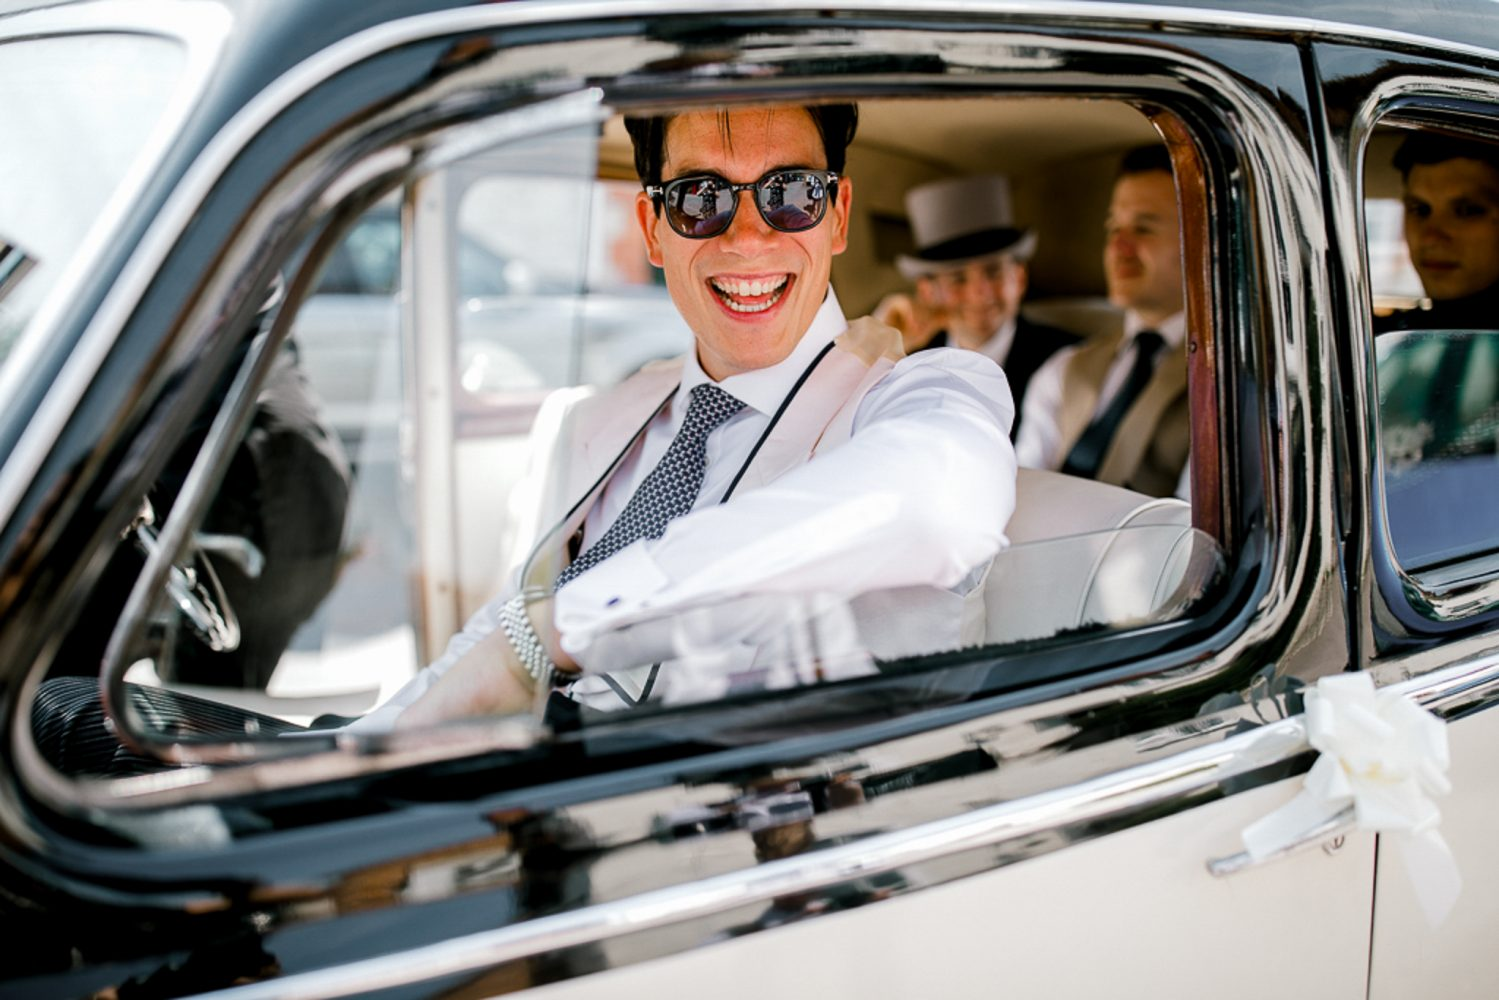 Groom laughing in wedding car